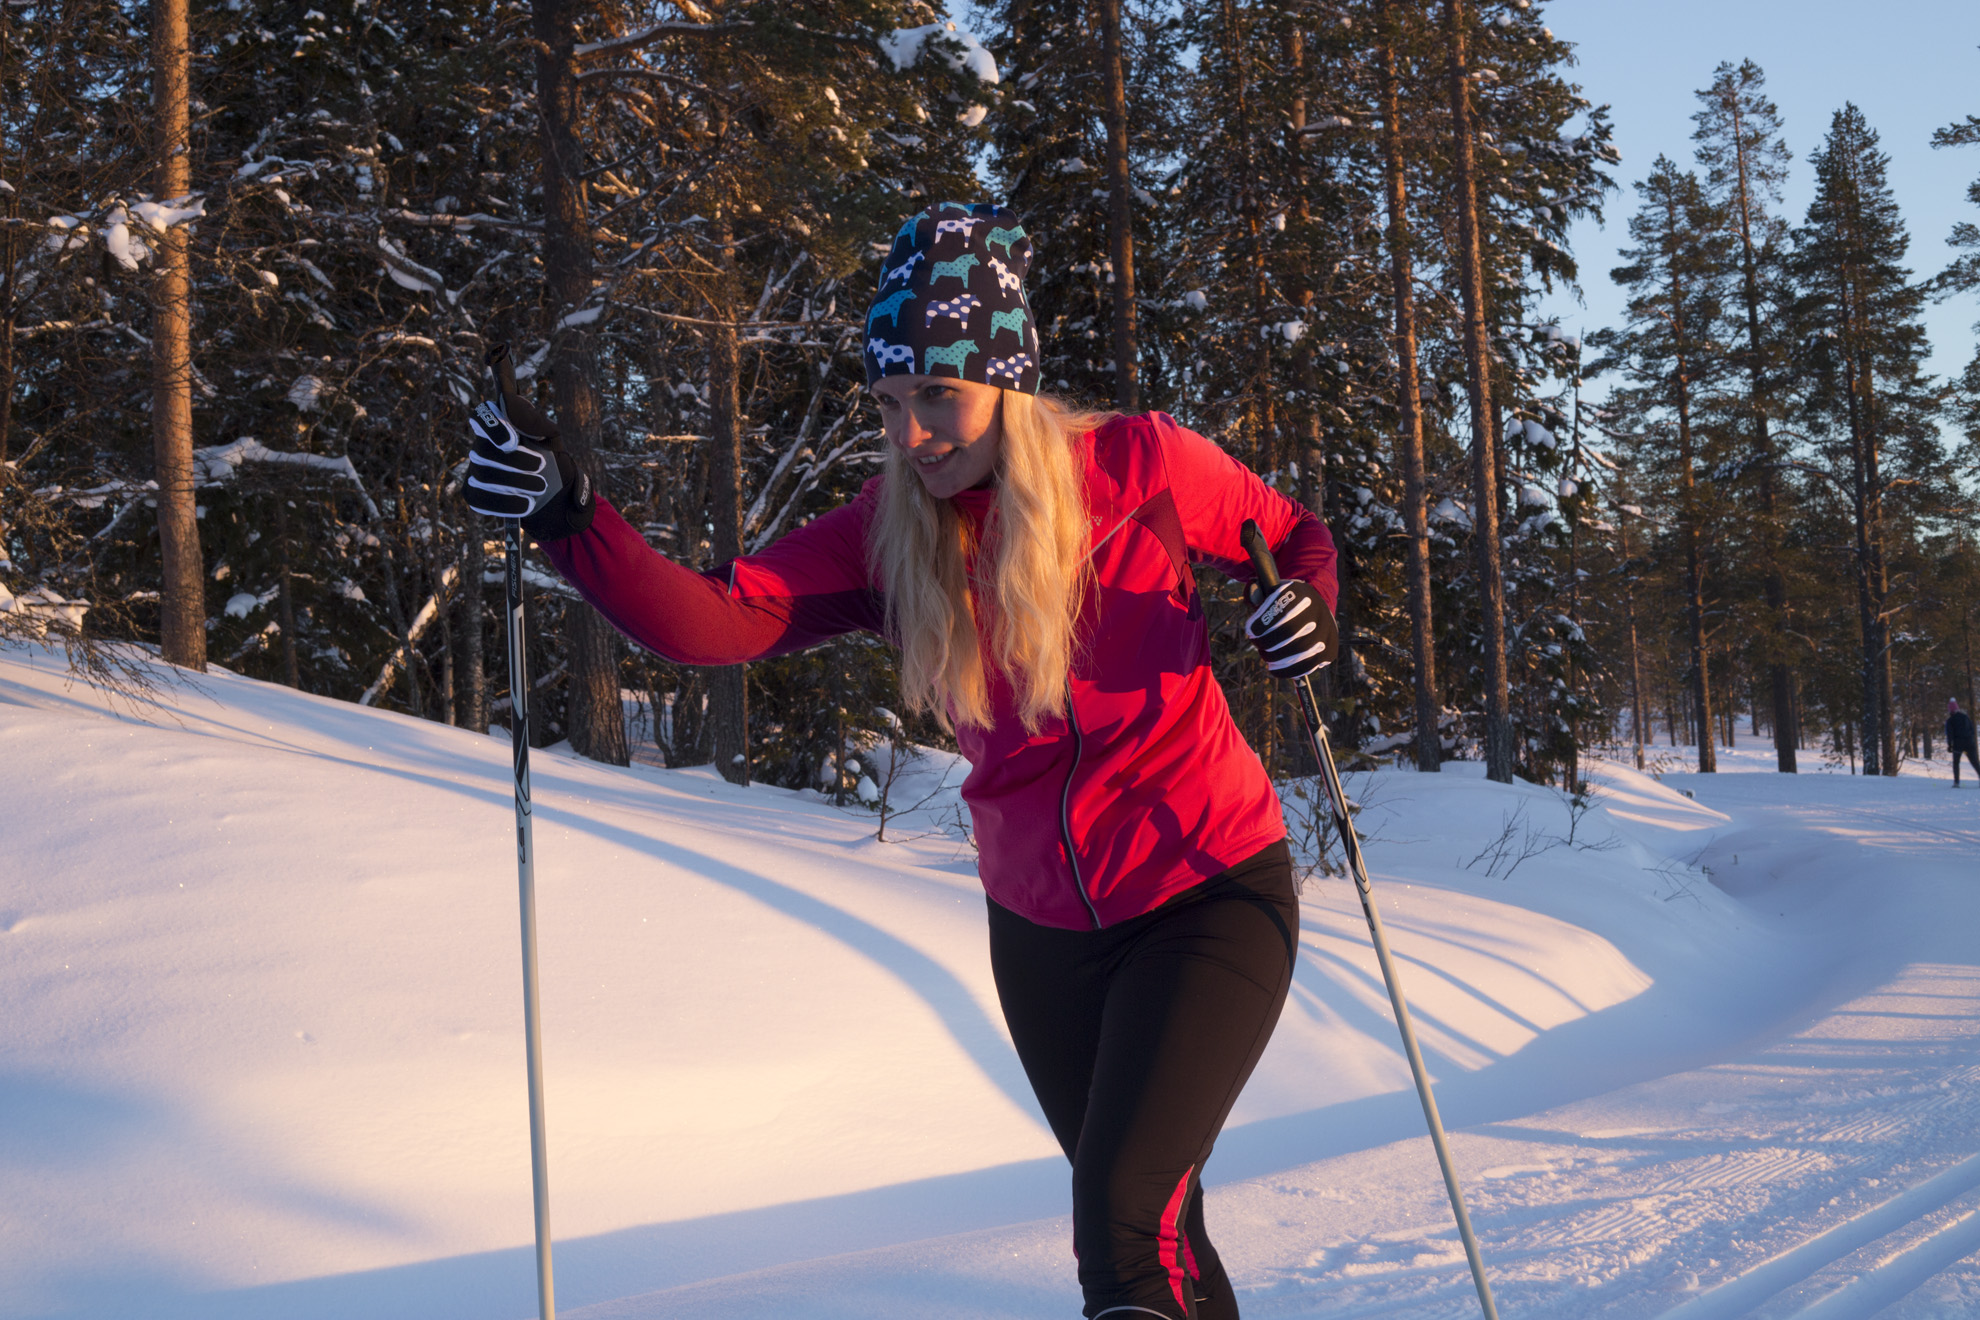 <!--:sv-->Cross Country Skiing<!--:--><!--:en-->Cross Country Skiing<!--:-->